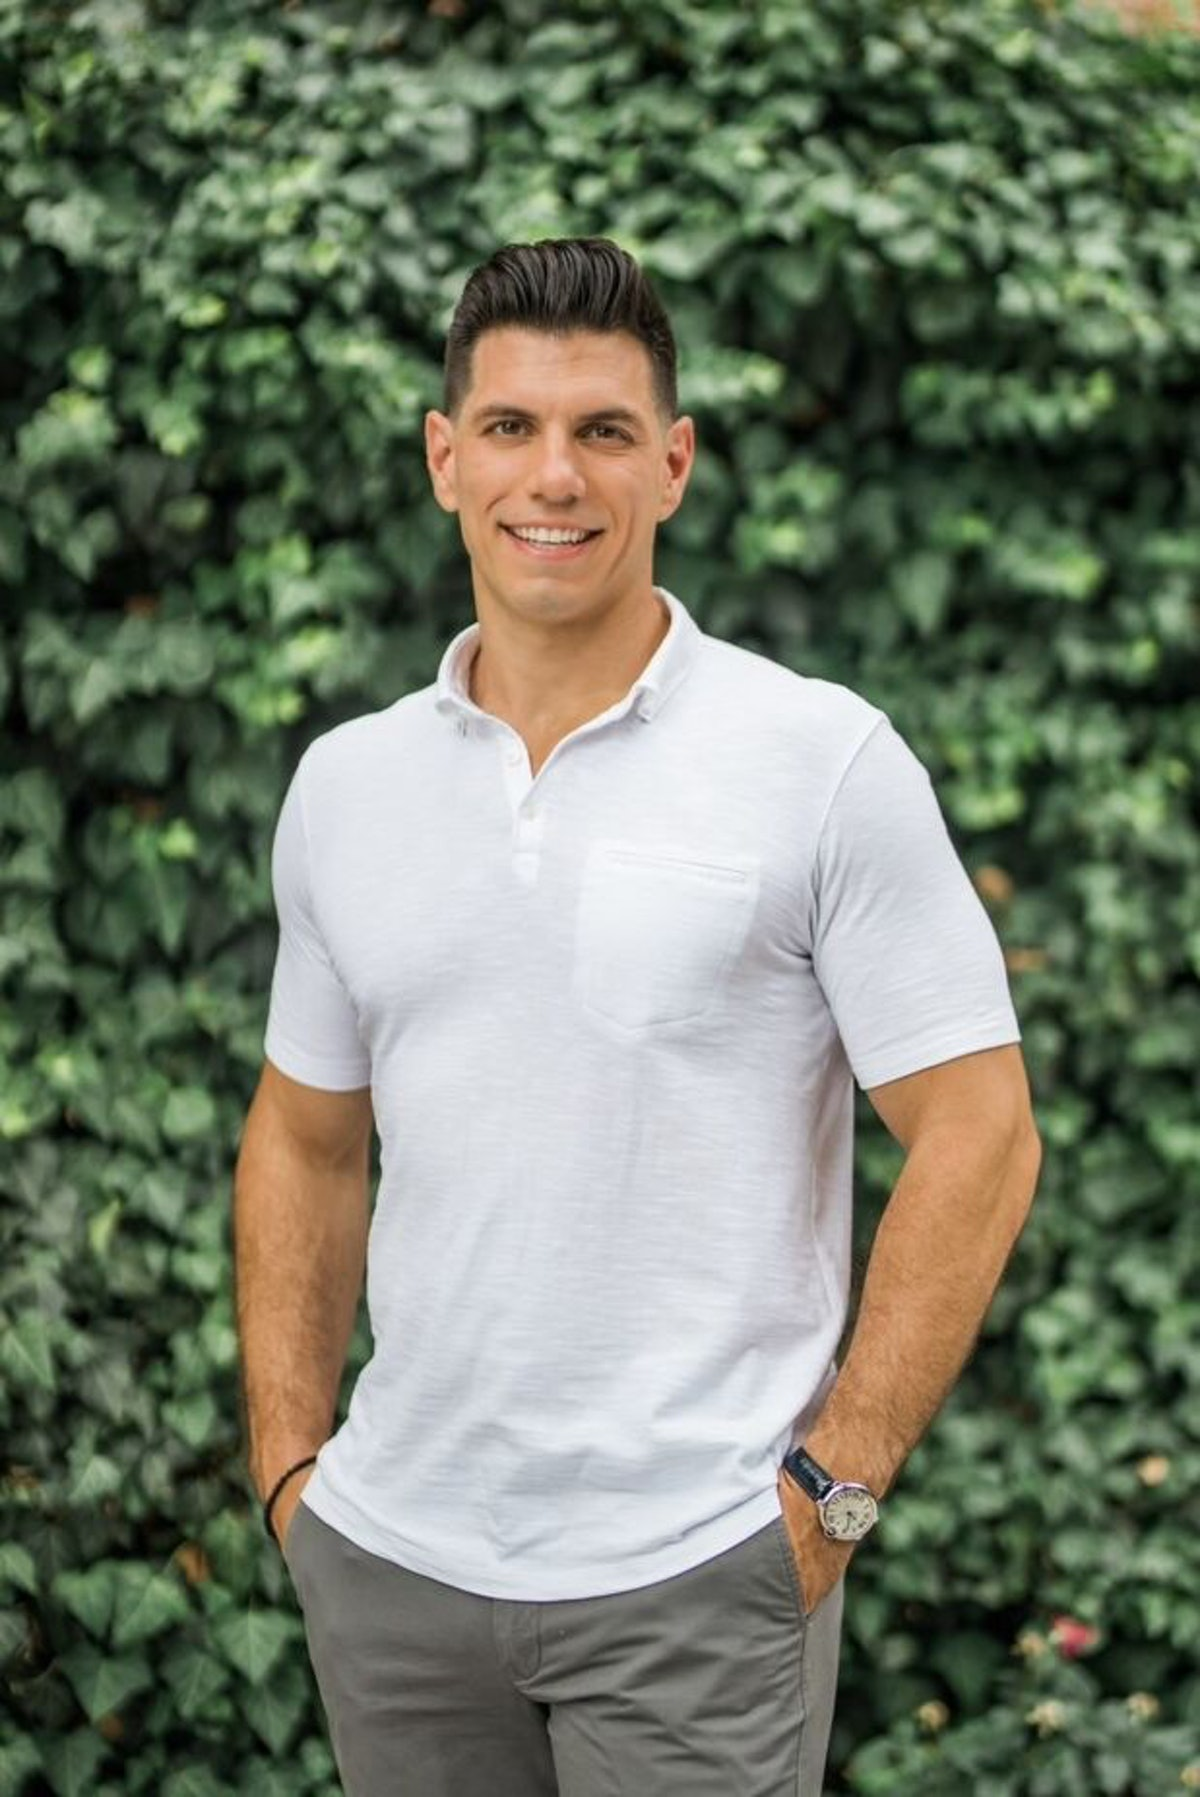 PETER GIANNIKOPOULOS on 'The Bachelorette'